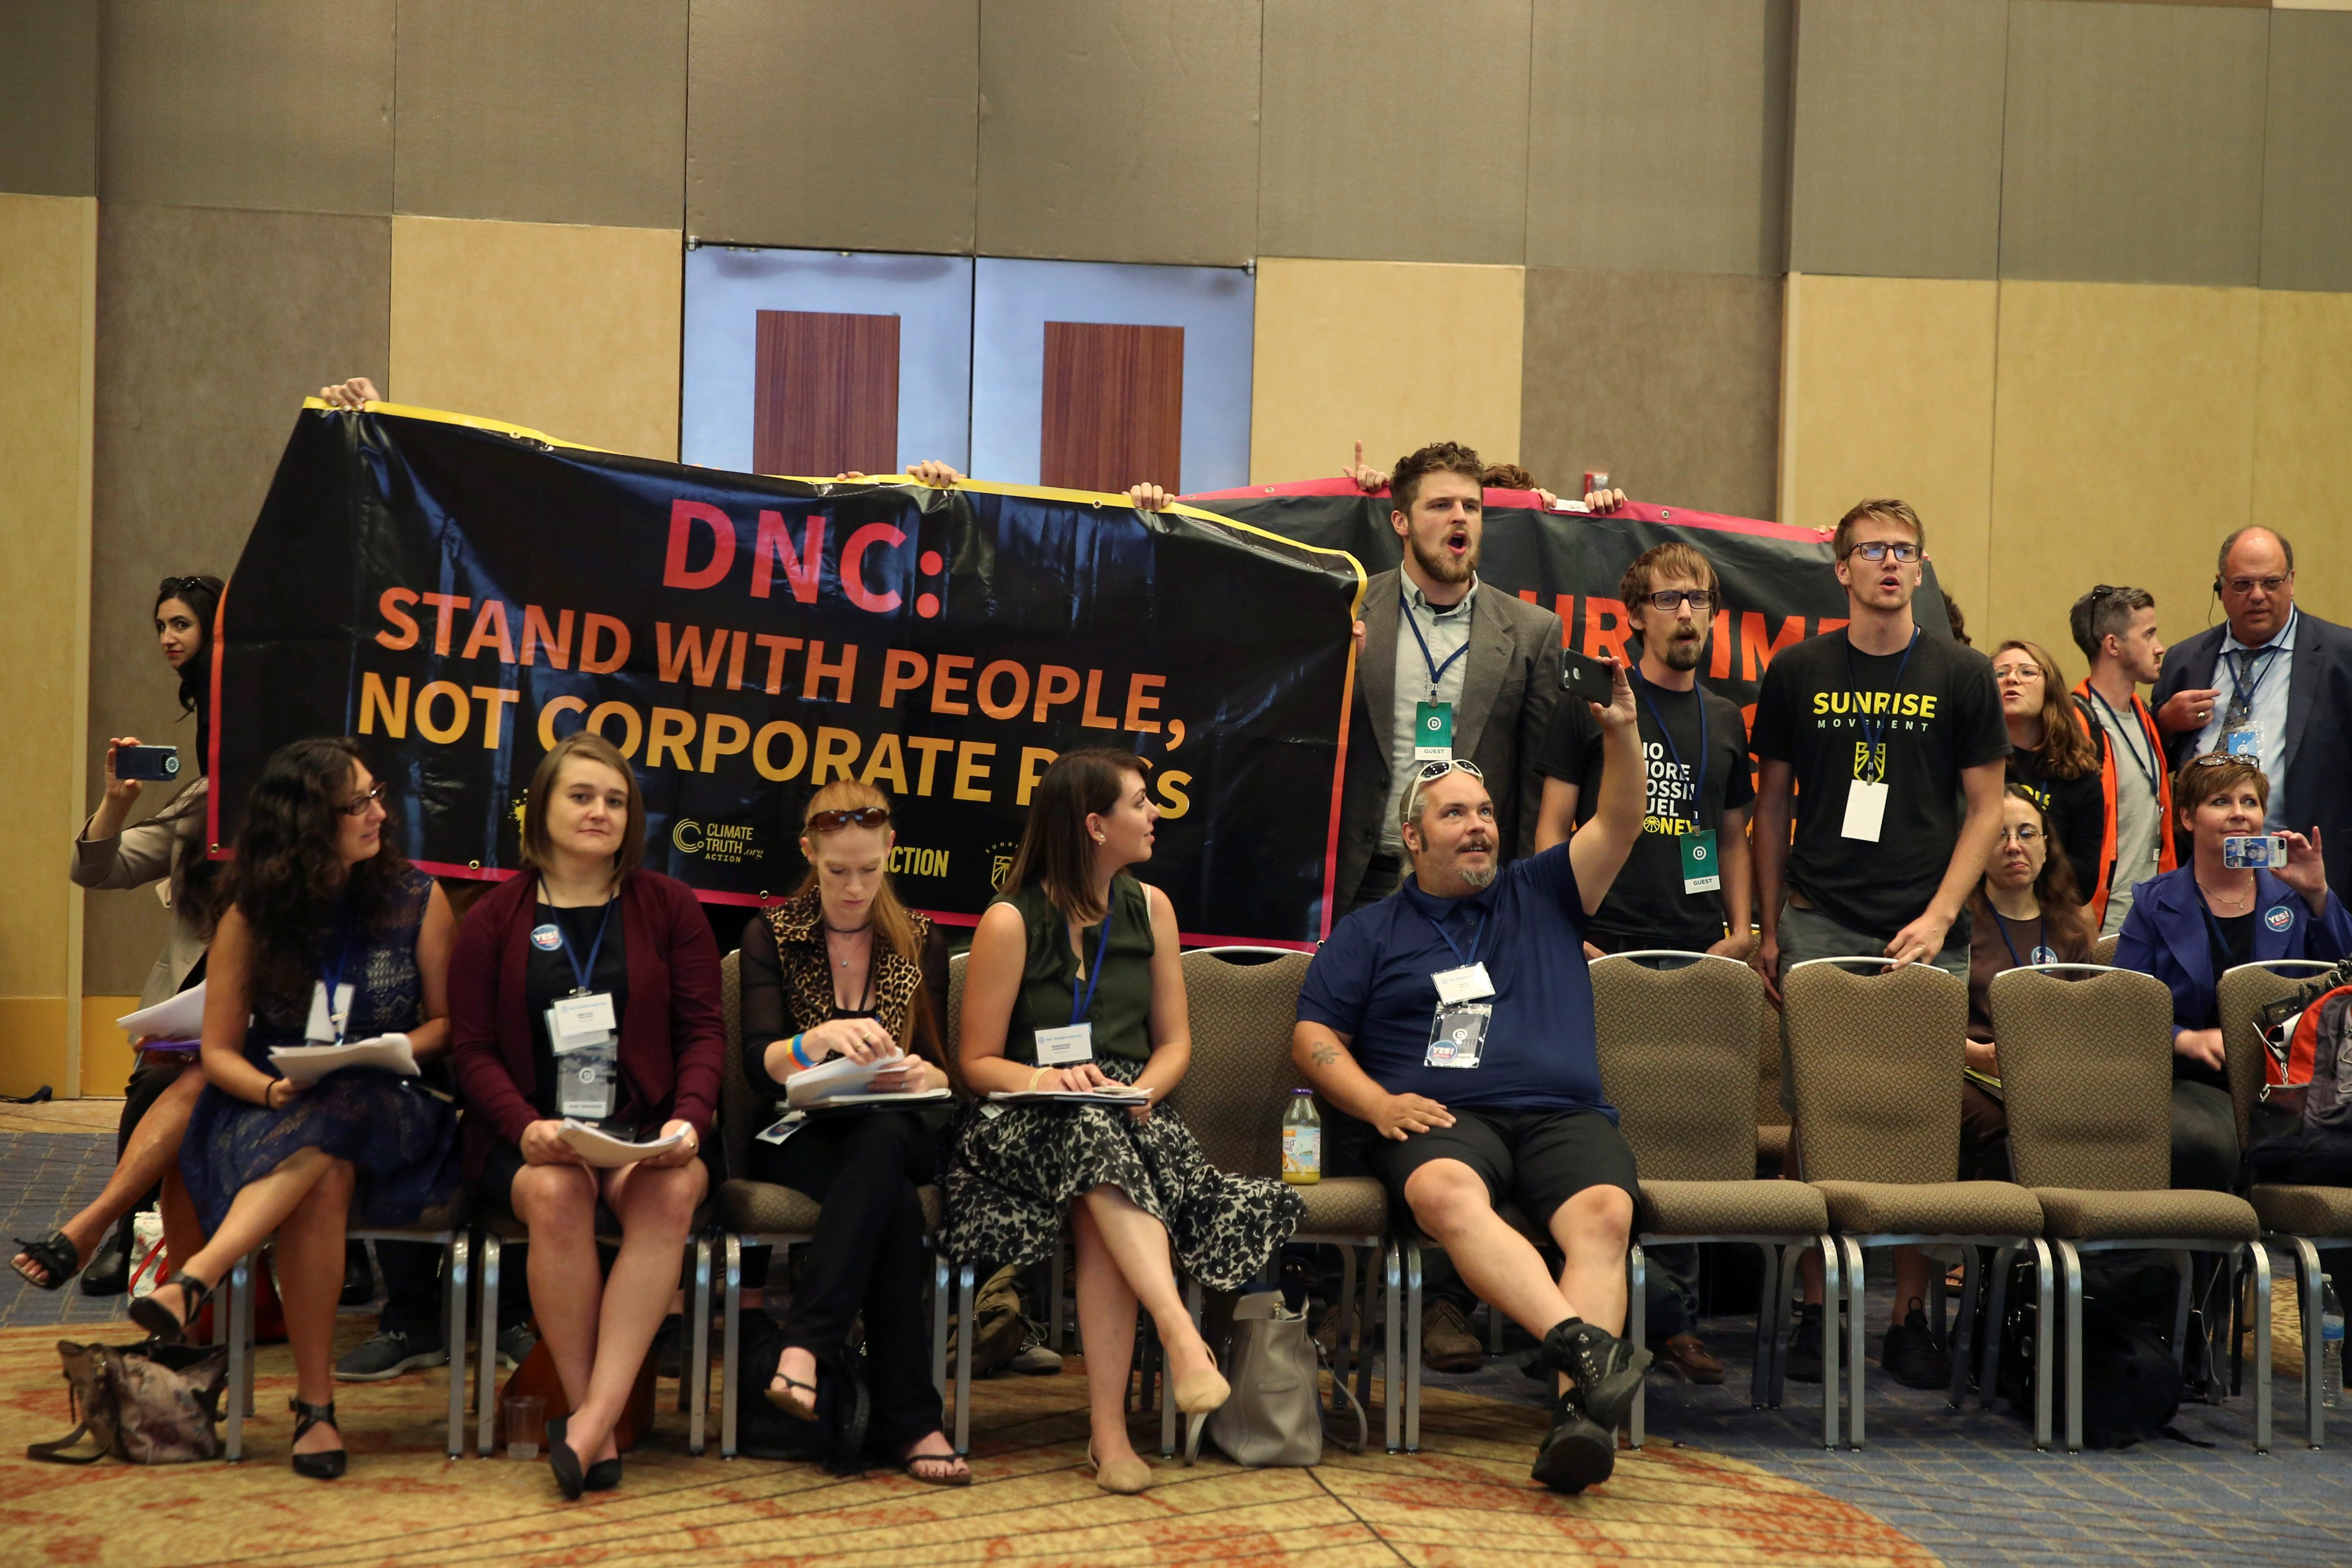 Demonstrators interrupt the DNC Summer Meeting in Chicago